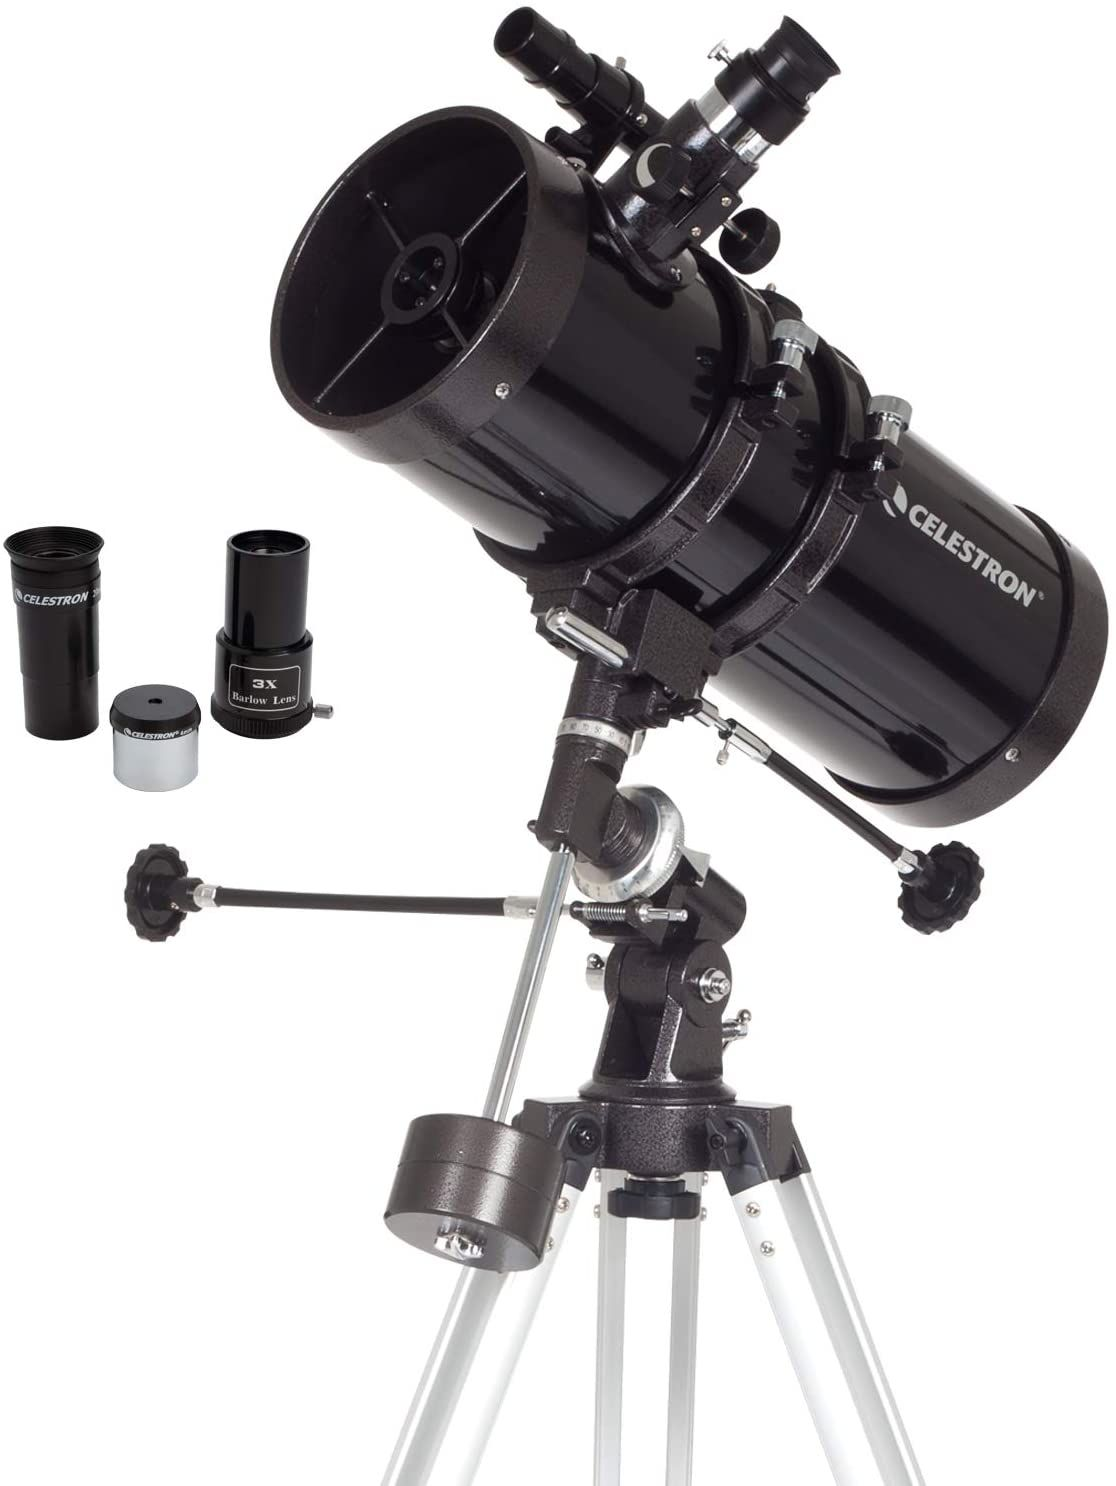 Multi-Layer Green Film Telescope 80EQ Refractor Scope with Digiscoping Adapter for Photography and 13 Percent Transmission Moon Filter 80mm Aperture and 700mm Focal Length